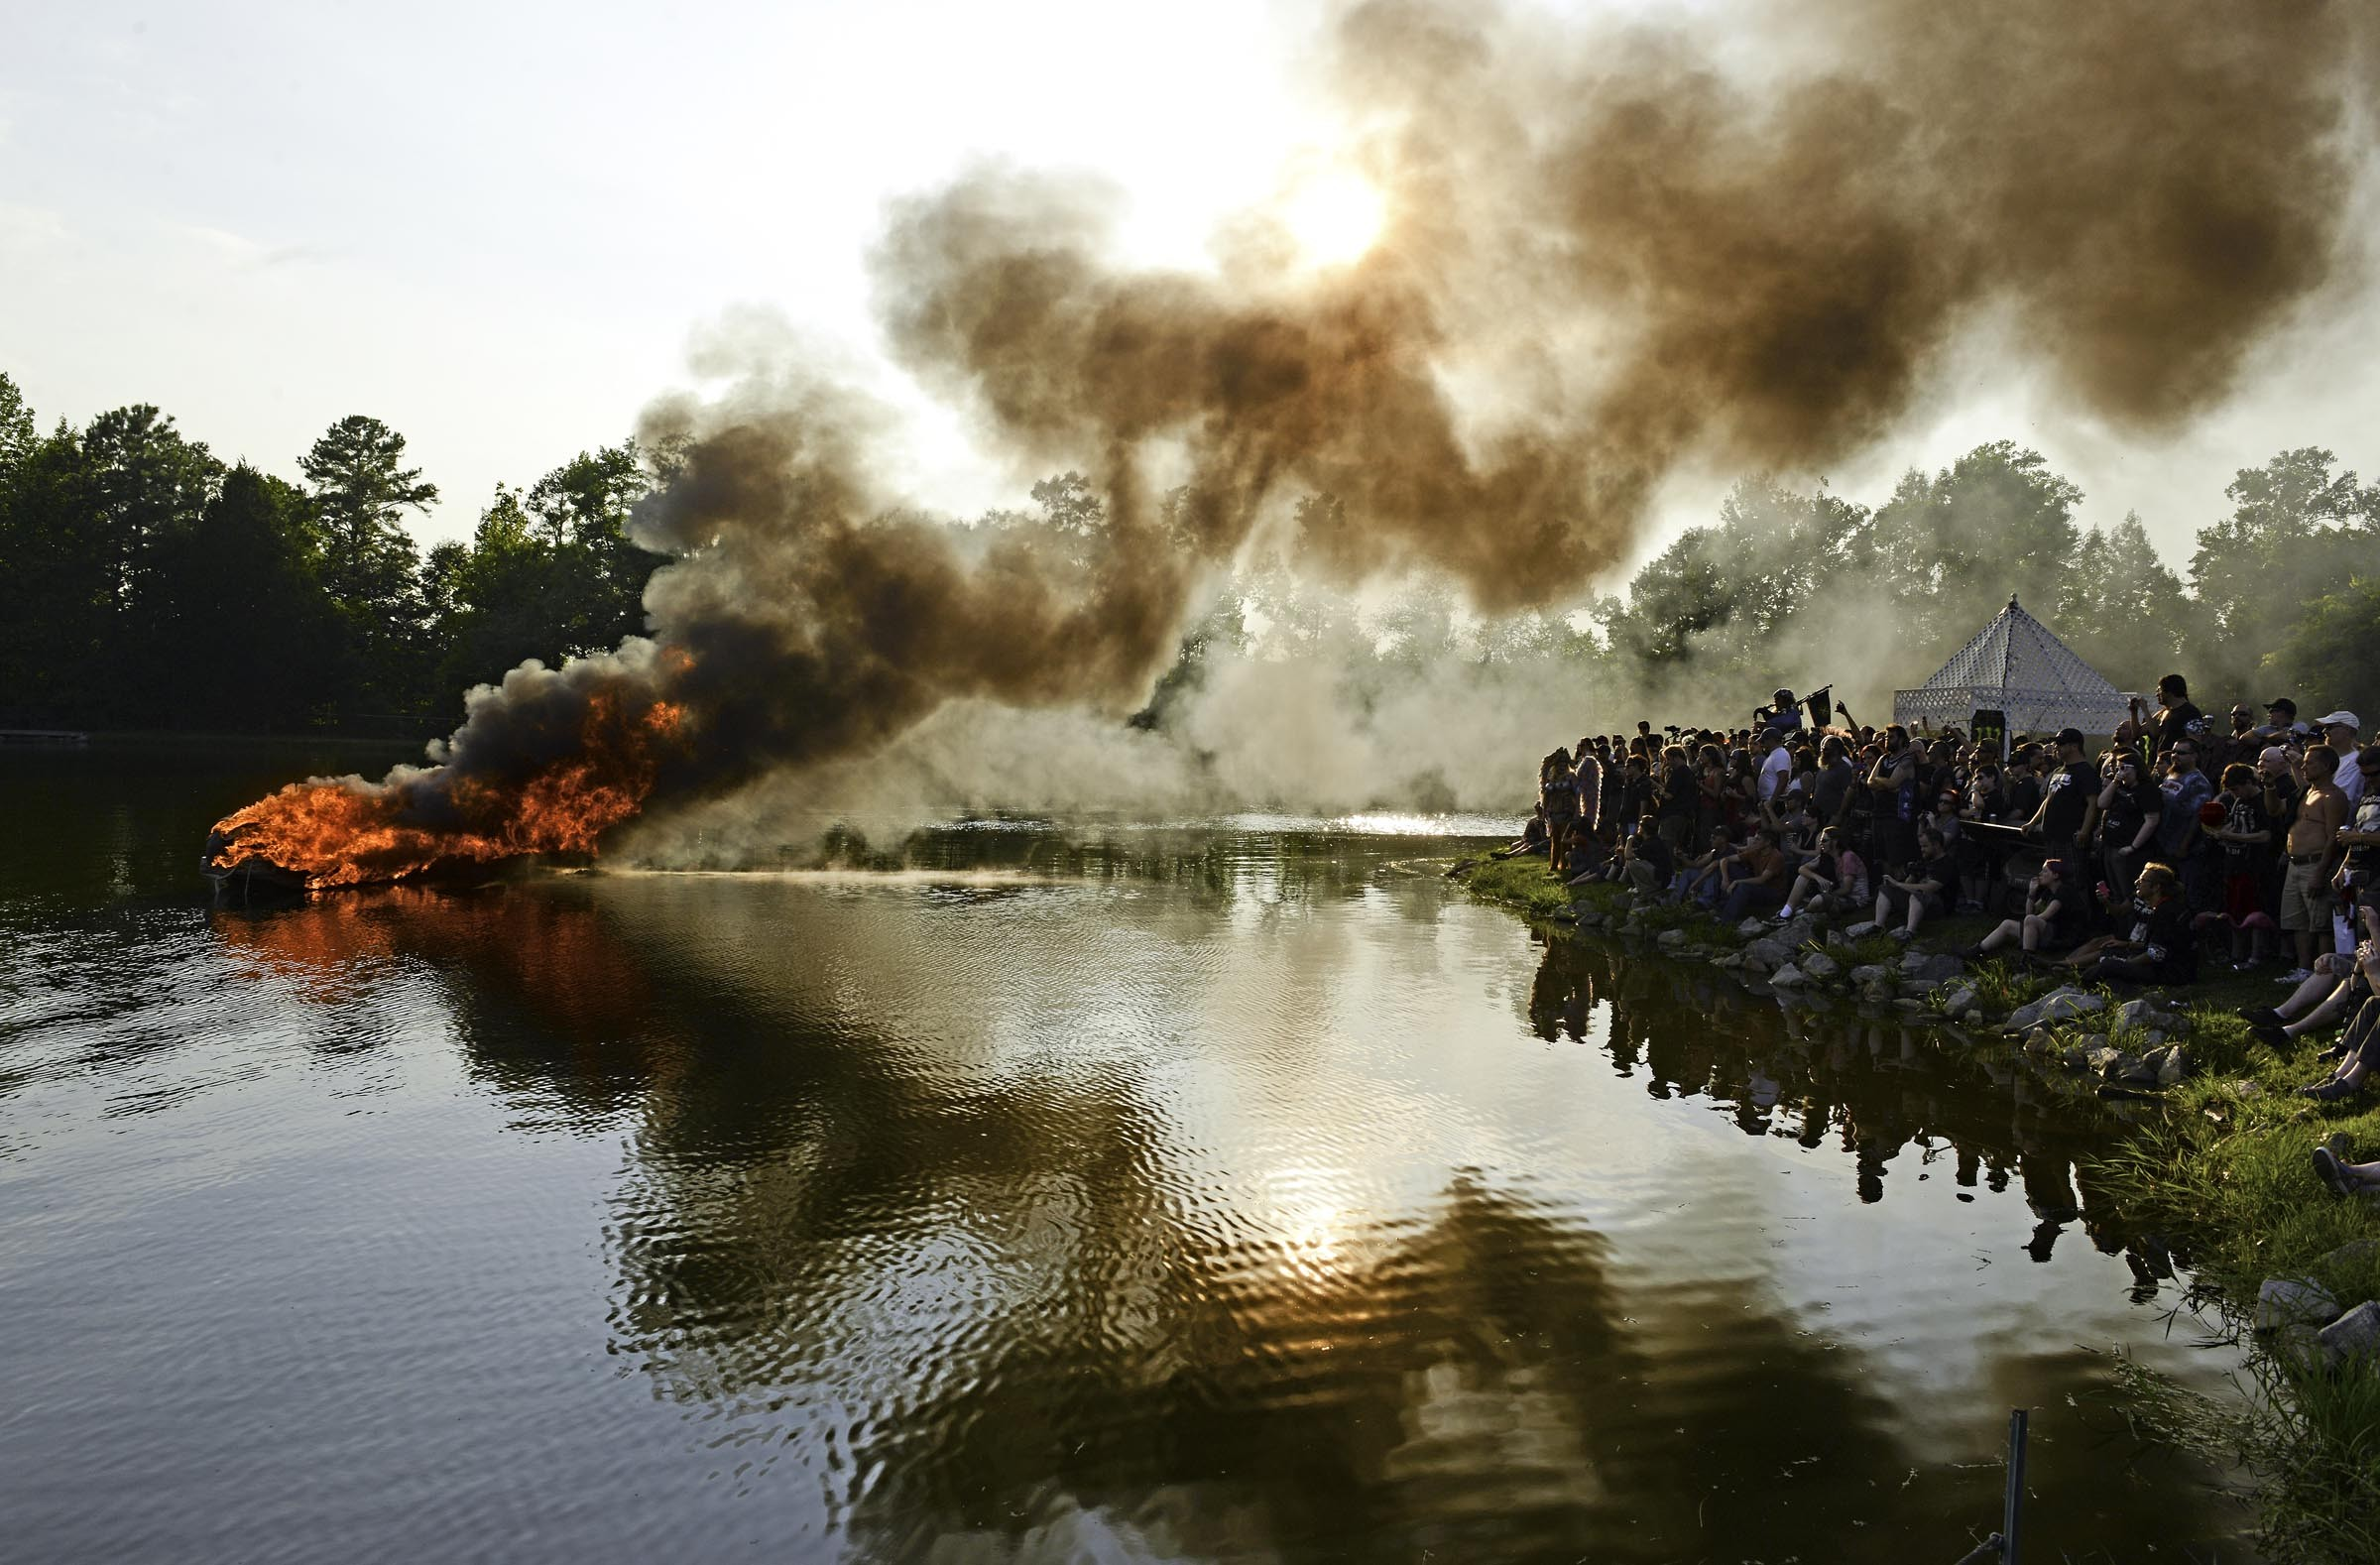 Smoke billows from a boat carrying the empty costume of the late Dave Brockie, who played Gwar frontman Oderus Urungus. The Viking-style ceremony brought thousands of fans to Hadad's Lake in Henrico on Aug. 15. - SCOTT ELMQUIST